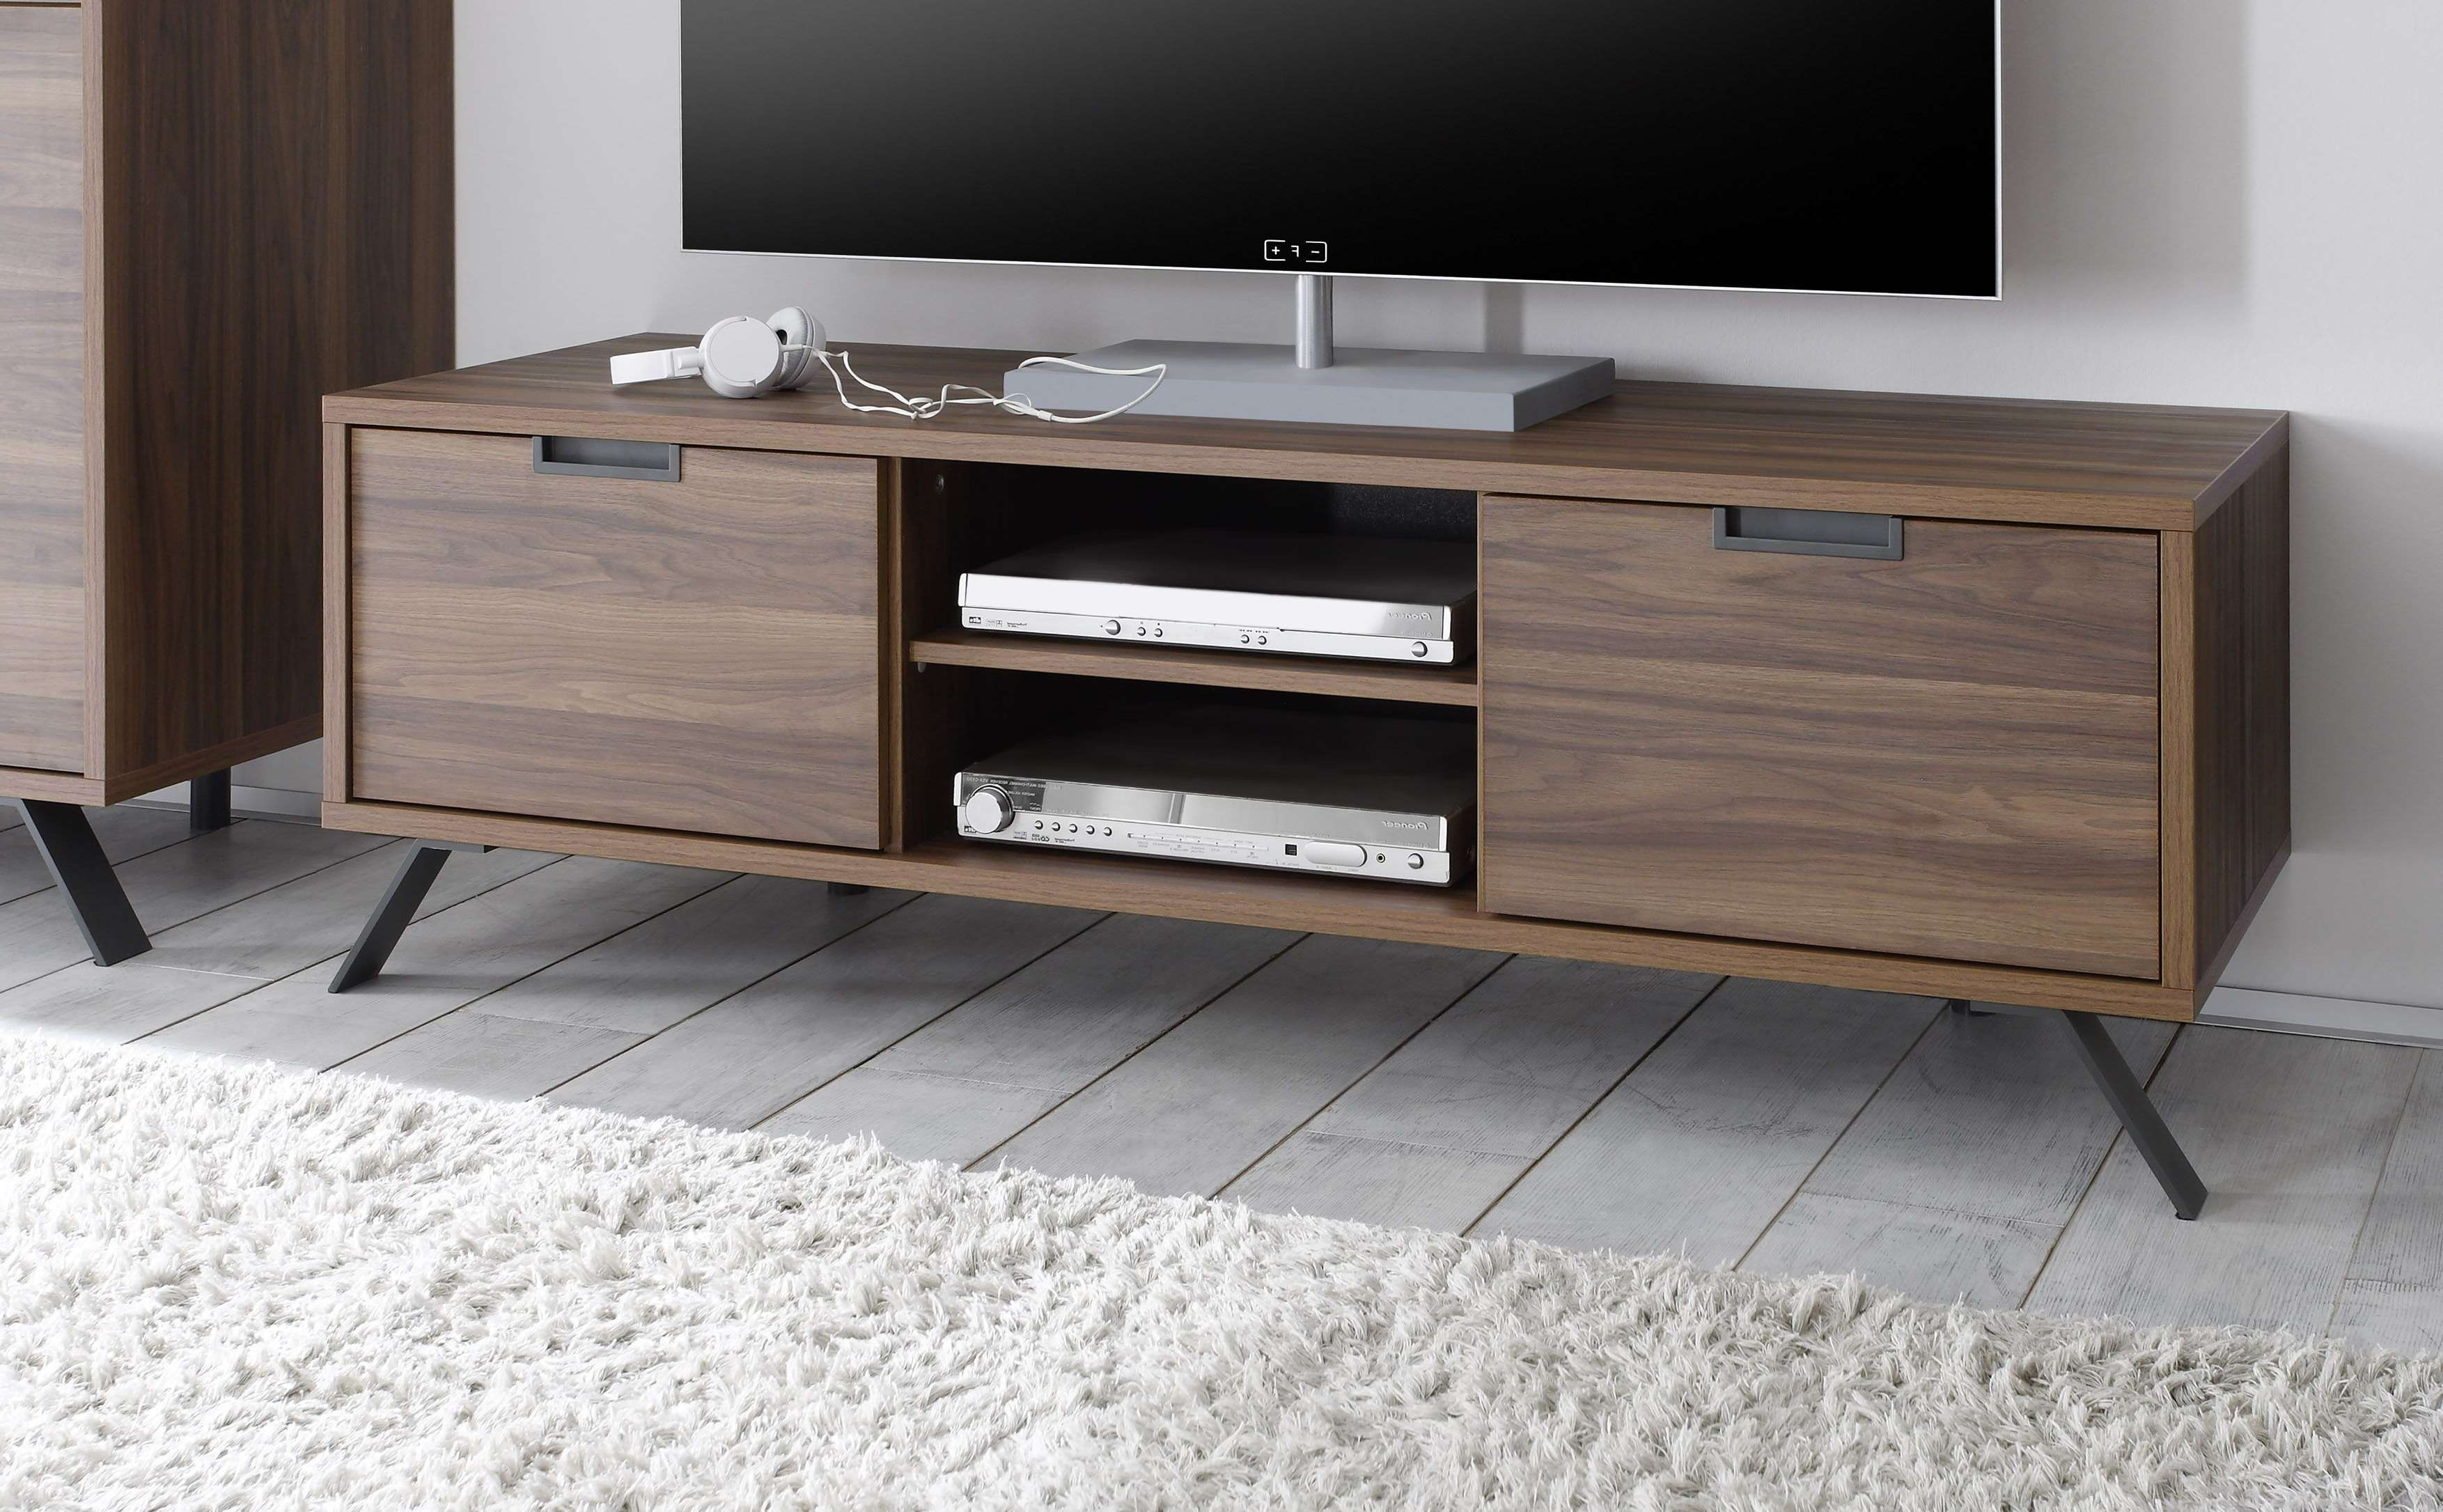 Palma Tv Stand, Walnut Buy Online At Best Price – Sohomod With Walnut Tv Stands (View 10 of 15)